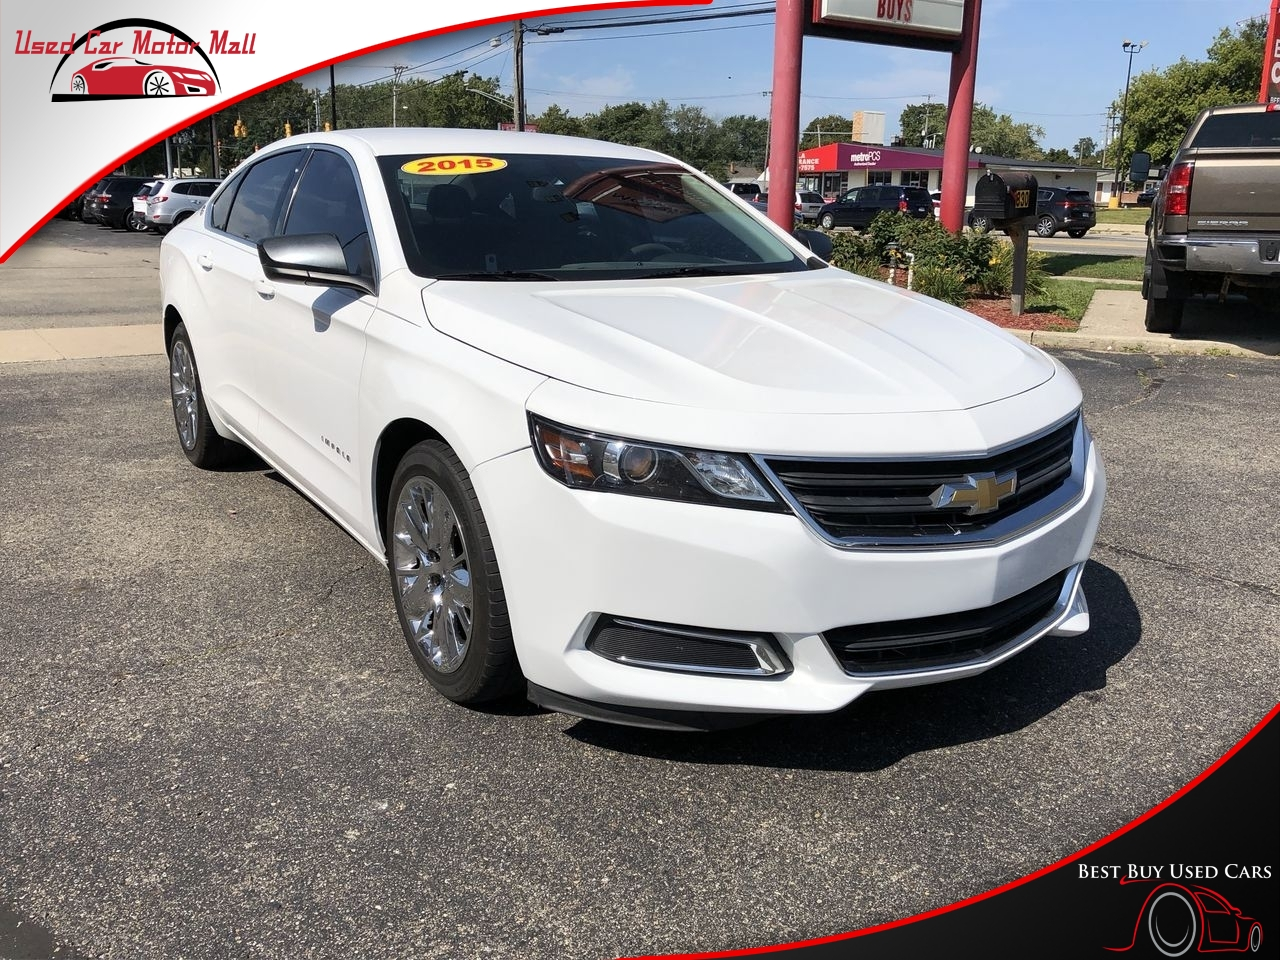 2014 Chevrolet Impala 2LT FWD, 158515, Photo 1